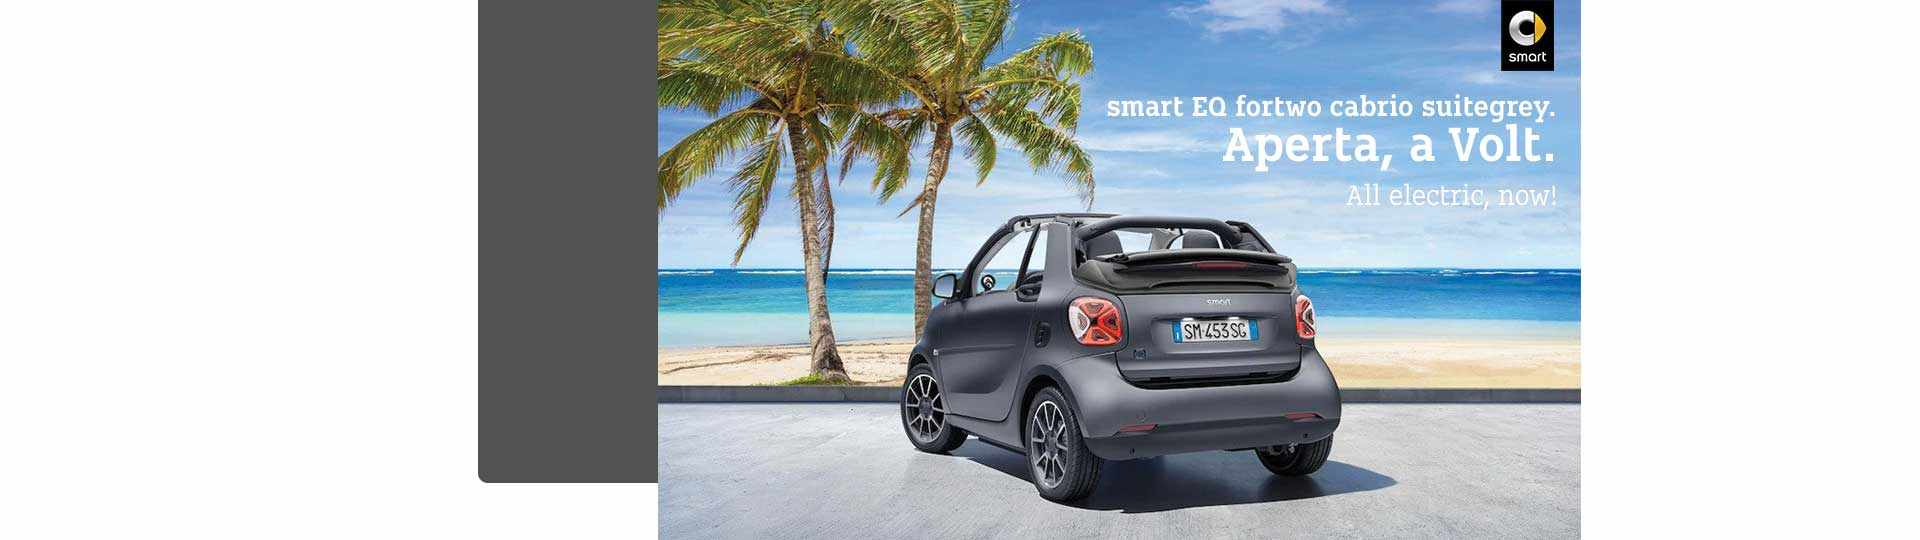 header_smart_suitegrey_cabrio_agosto_2020.jpg